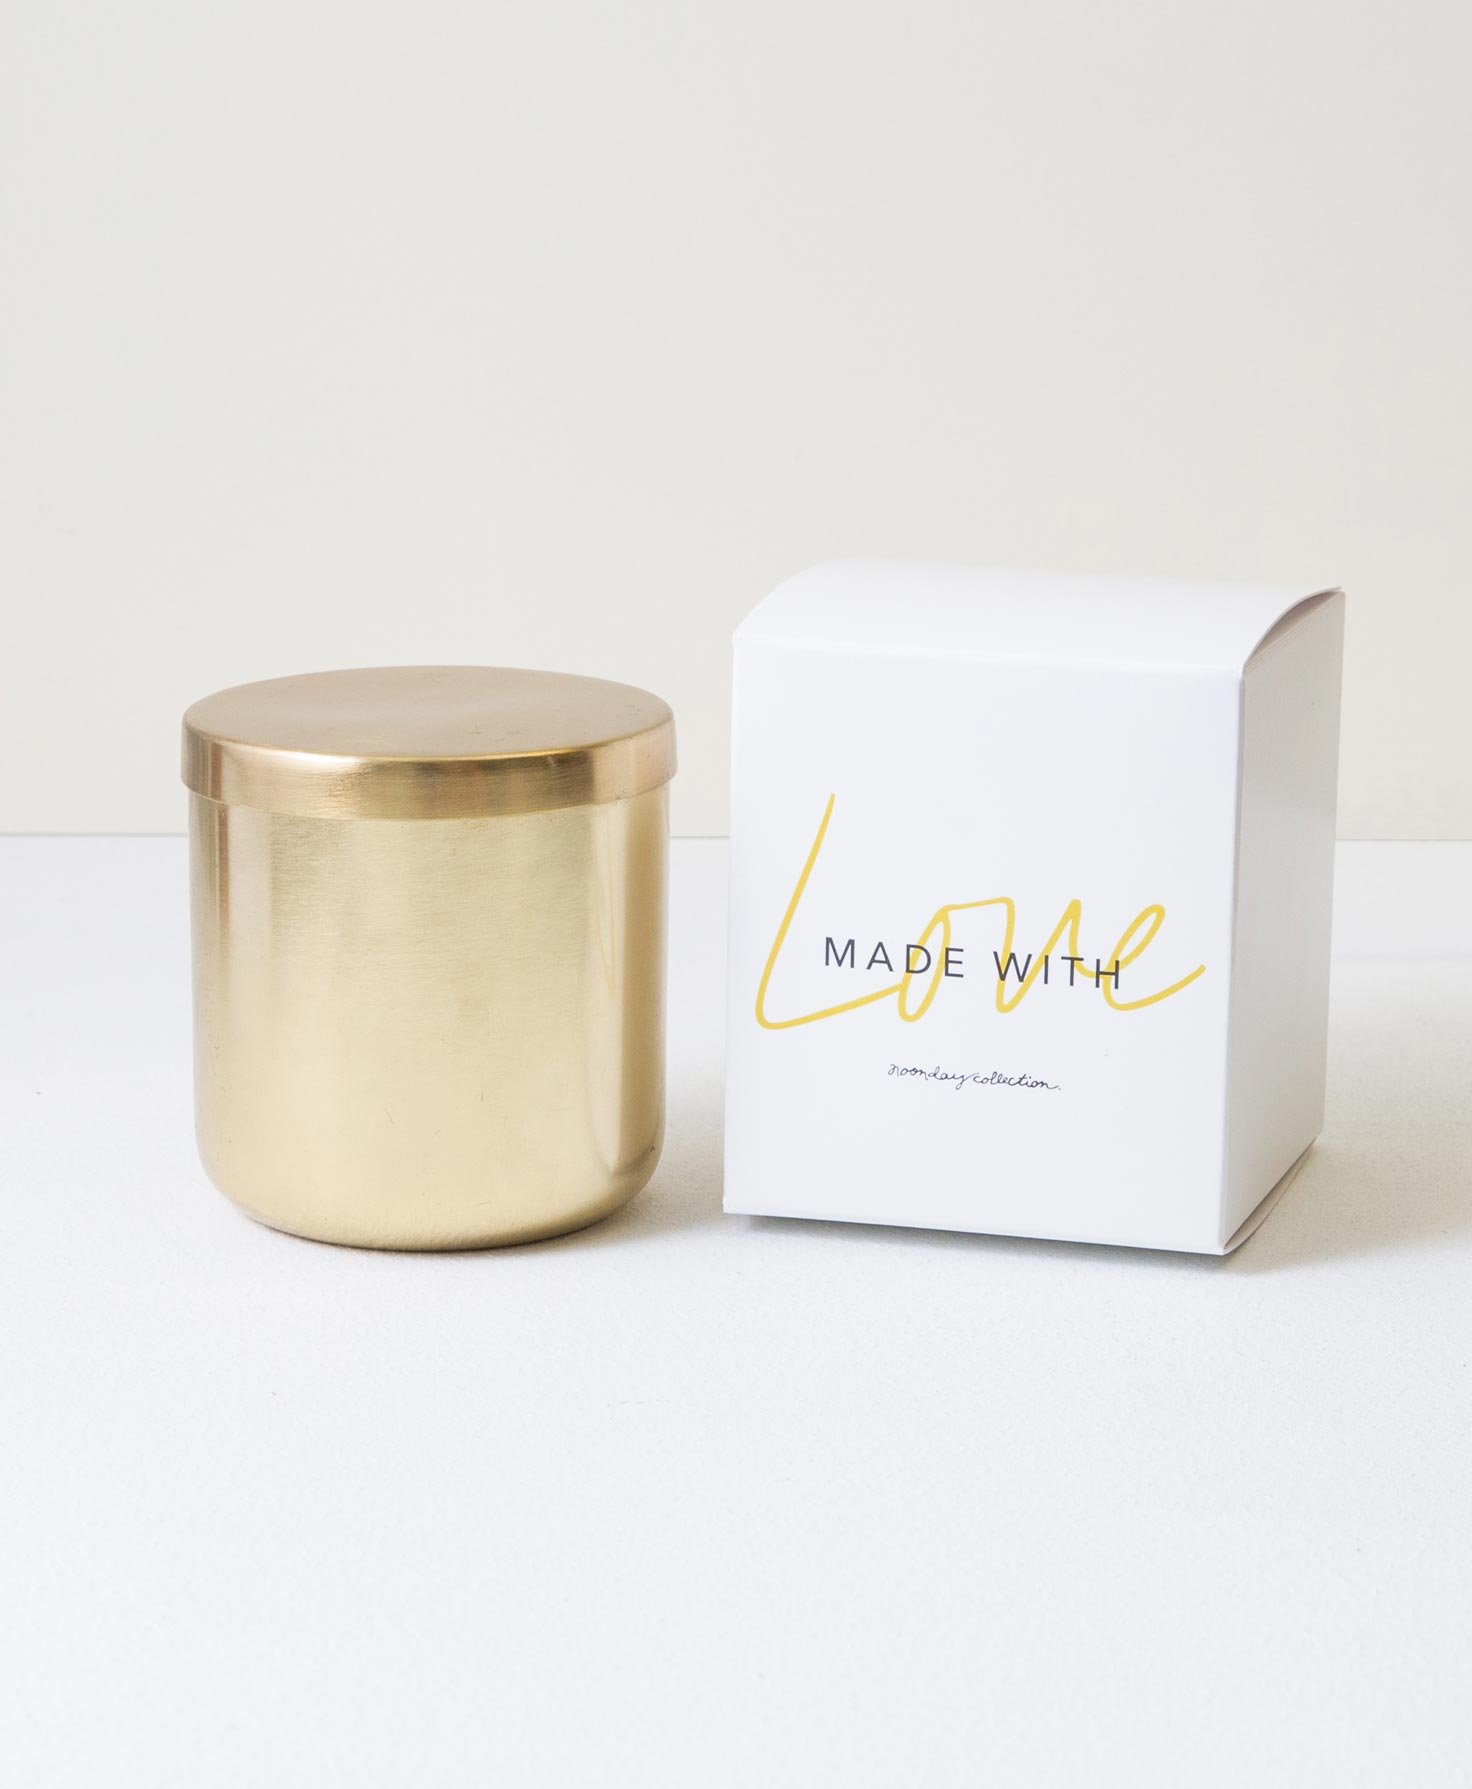 The Gather Candle sits with its brass lid on. The decorative box it is packaged in sits next to it. The box is white with